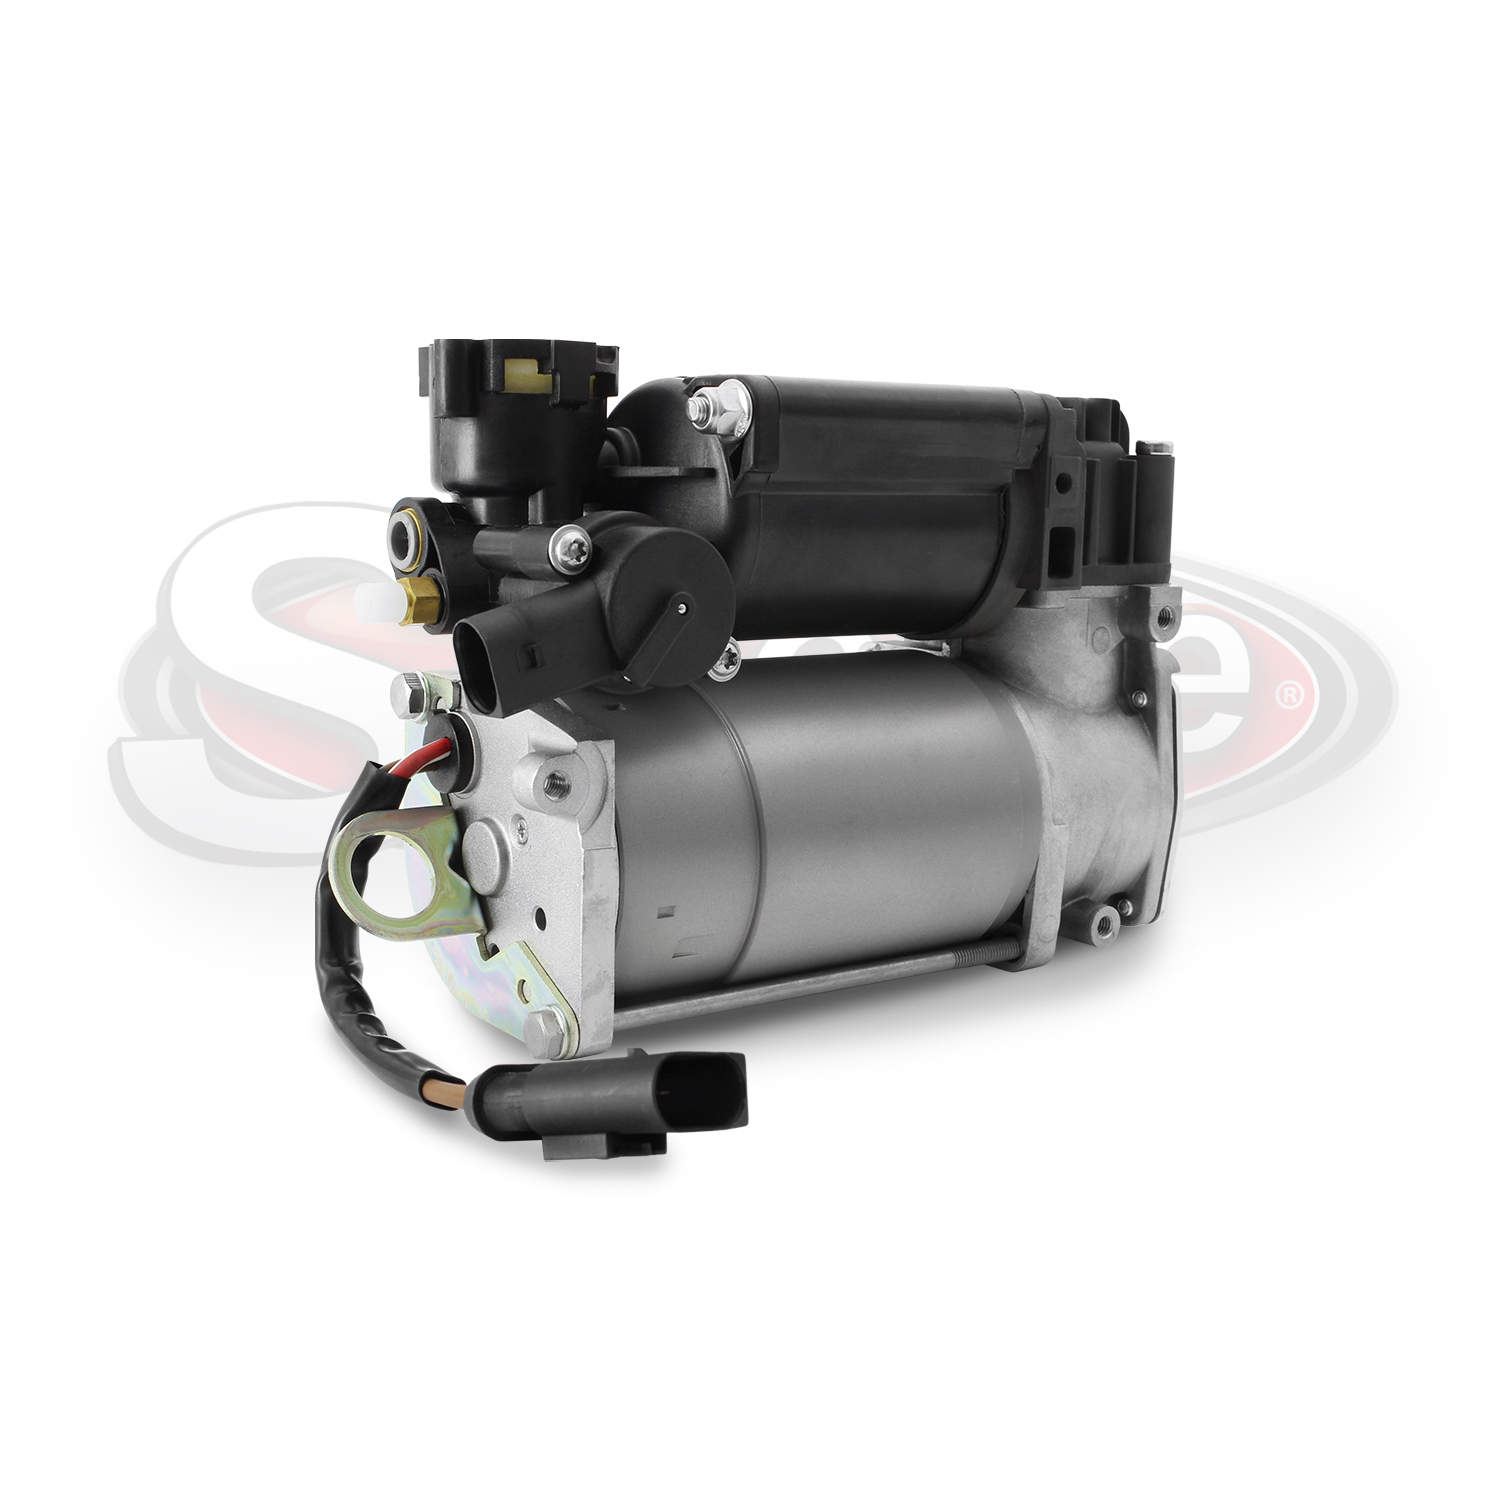 Air Suspension Compressor (XJ8 XJR Vanden Plas) Repl. C2C27702